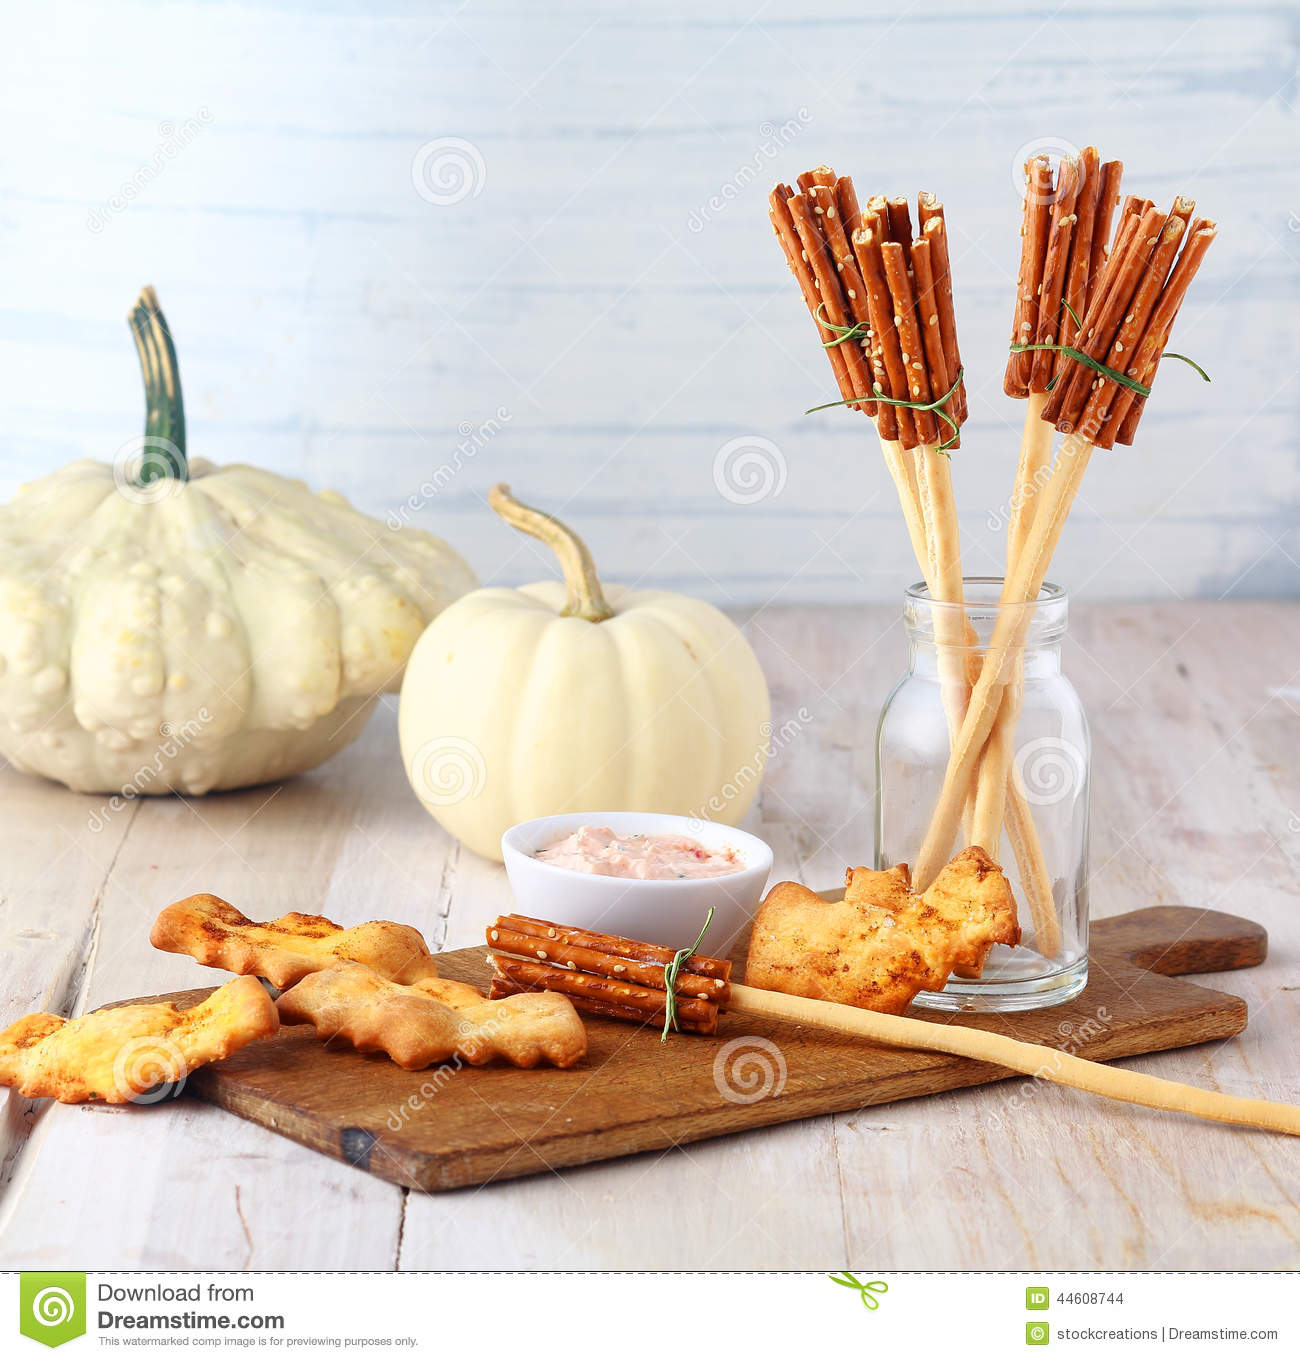 Fun Halloween Witches Broomstick Appetizers Stock Photo